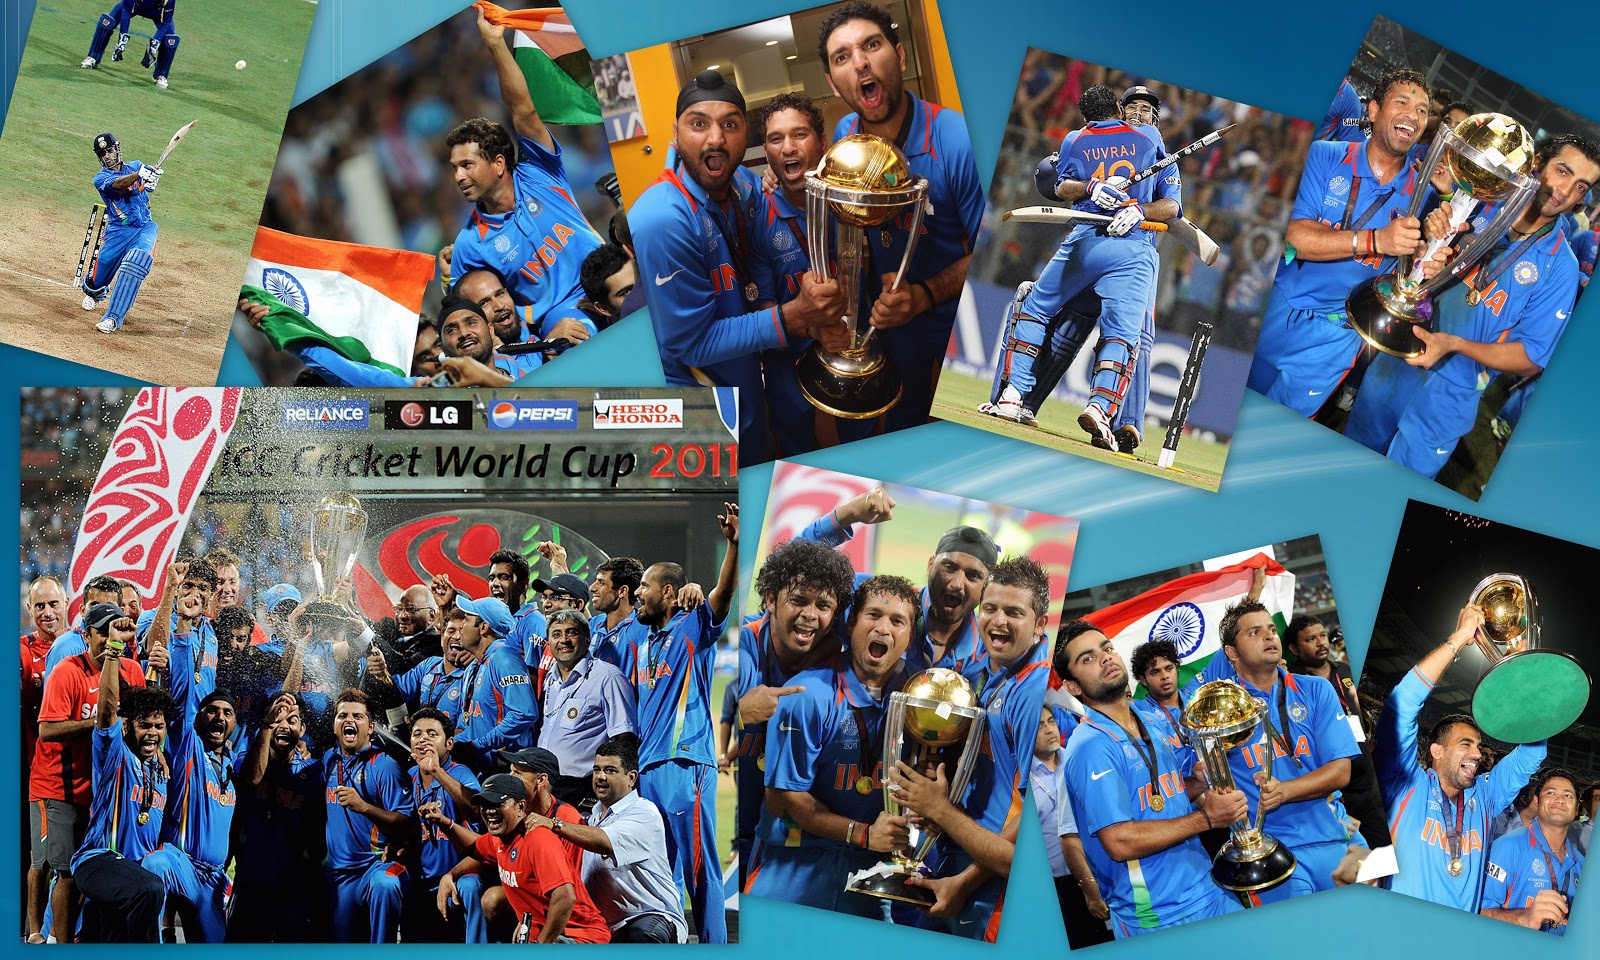 http://4.bp.blogspot.com/-lOVh2QoP0FY/TwIZ1ubB9zI/AAAAAAAACnY/pO-jmEzC7ys/s1600/India-World-Cup-2011-Victory-Wallpaper-collage.jpg